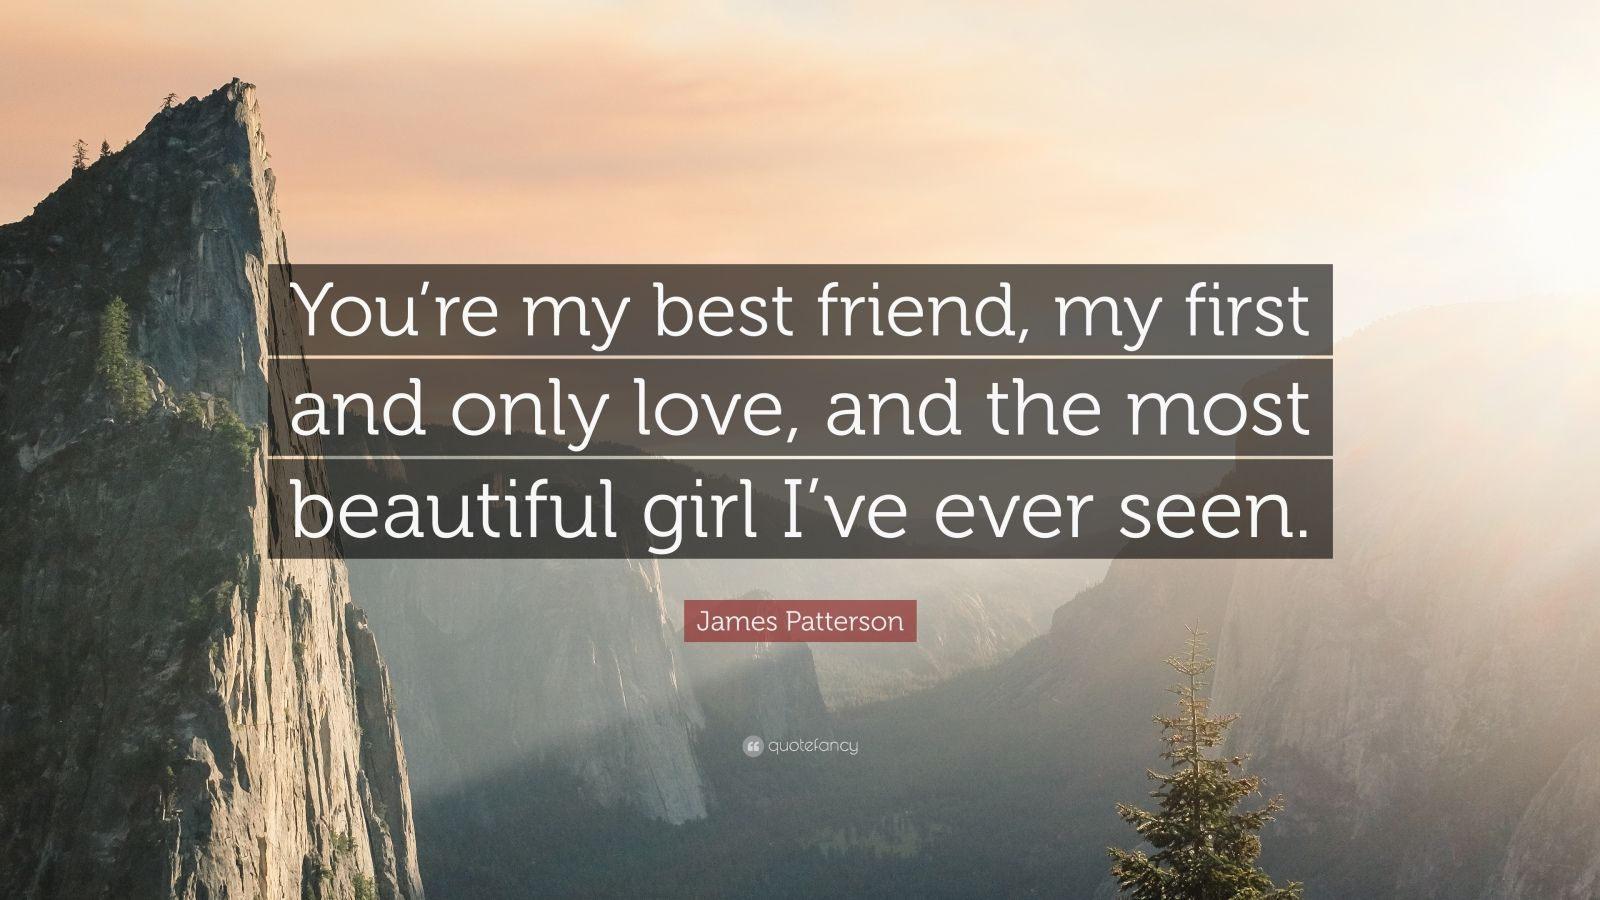 James Patterson Quote: Youre my best friend, my first